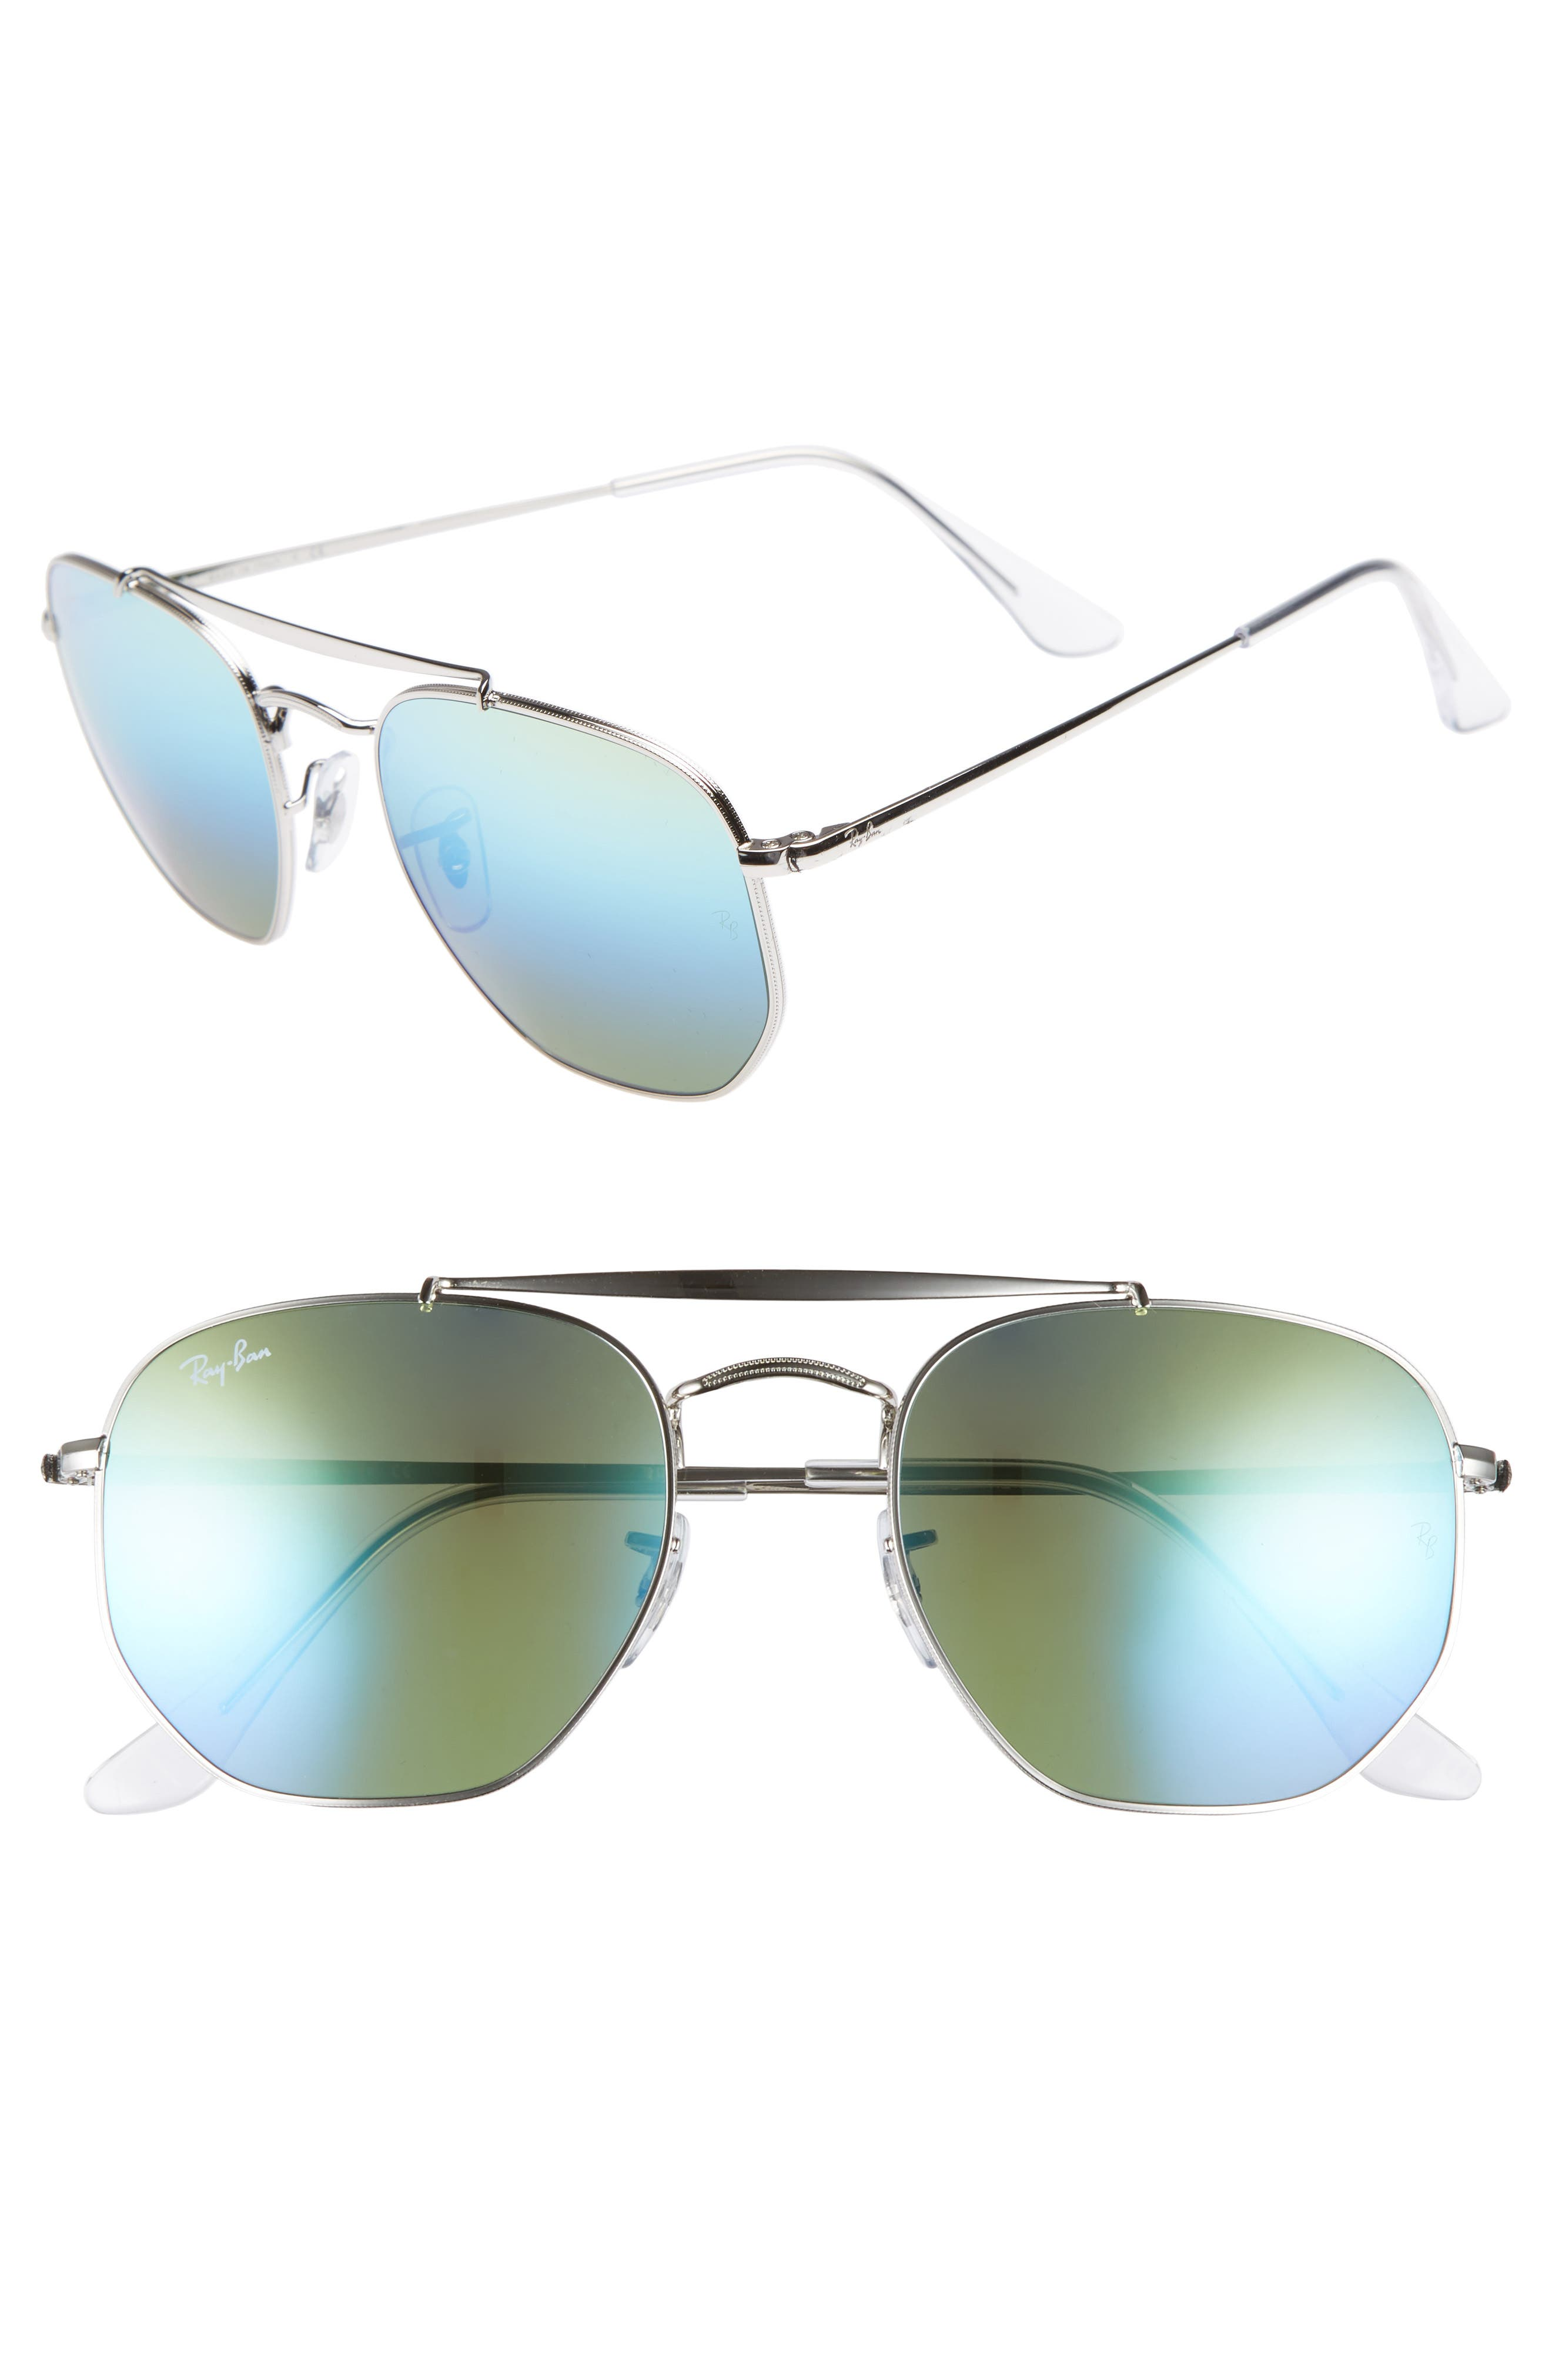 Marshal 54mm Aviator Sunglasses,                             Main thumbnail 1, color,                             Blue/ Green